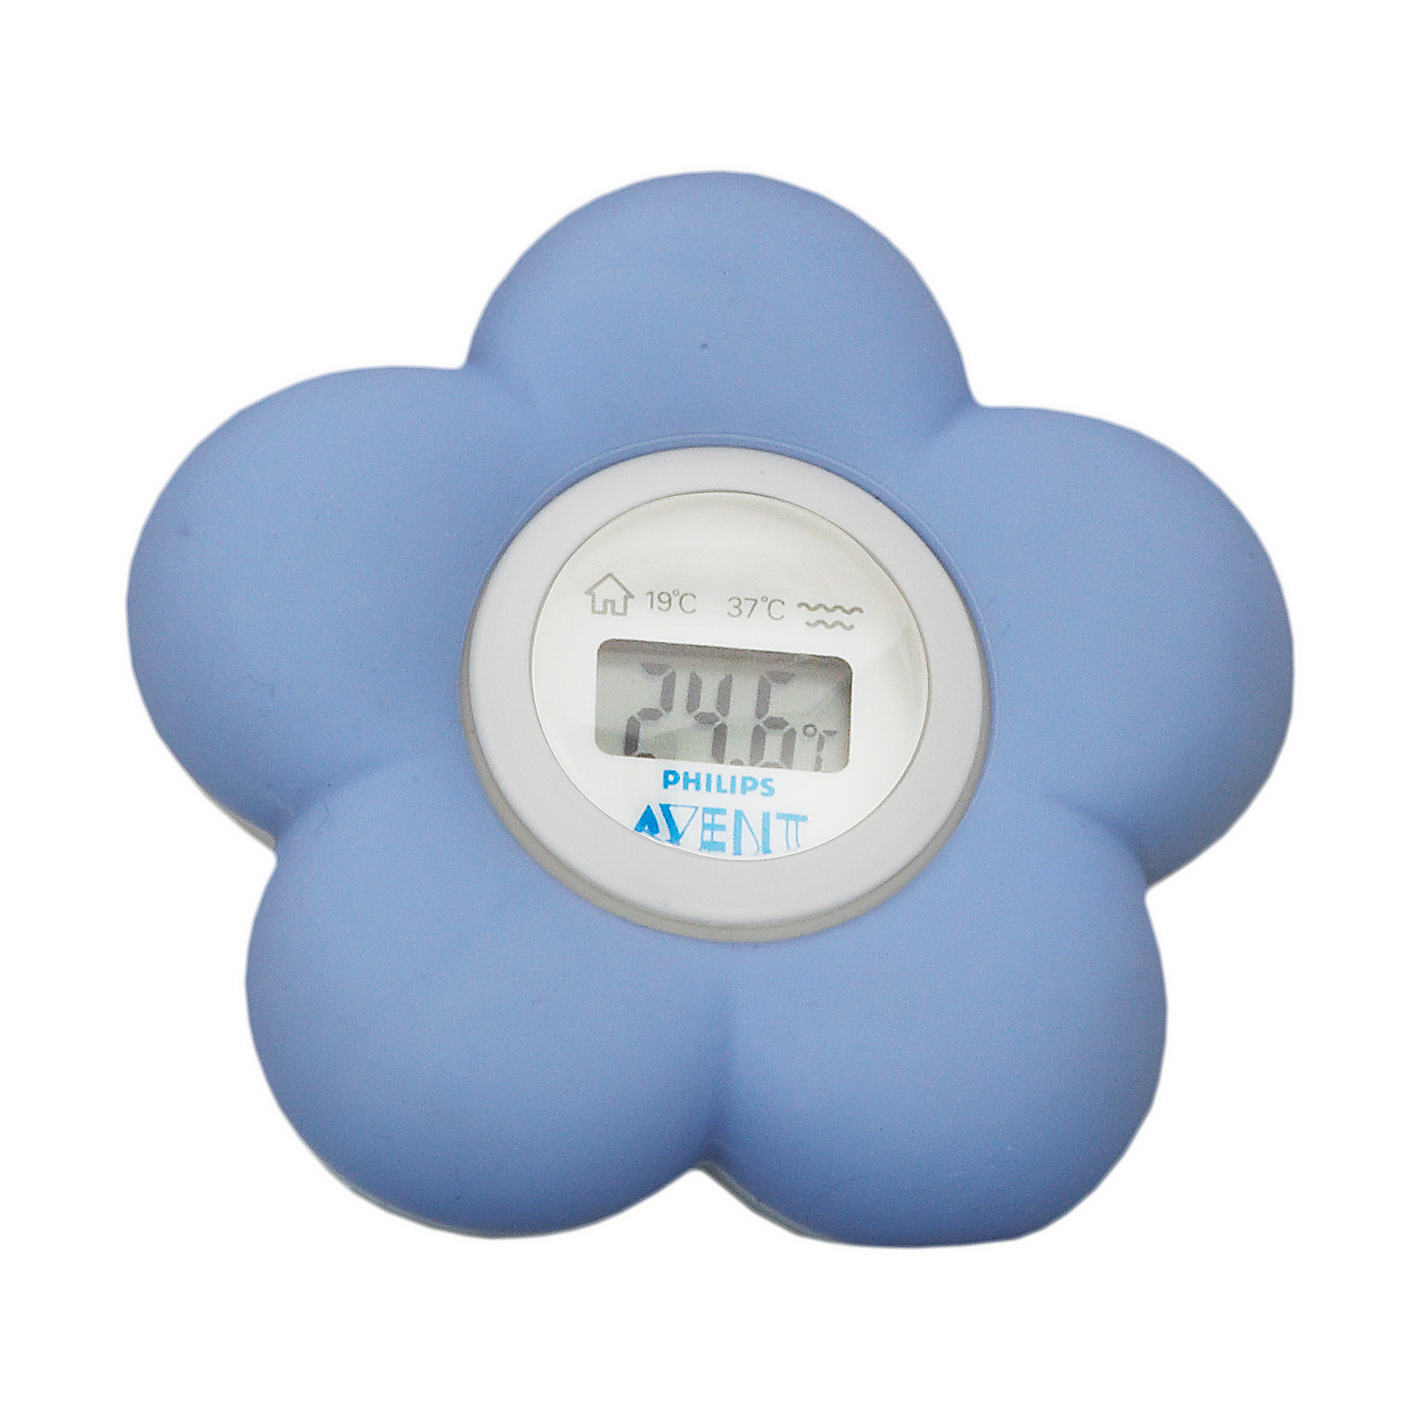 Digital Dual Purpose Bath And Room Thermometer